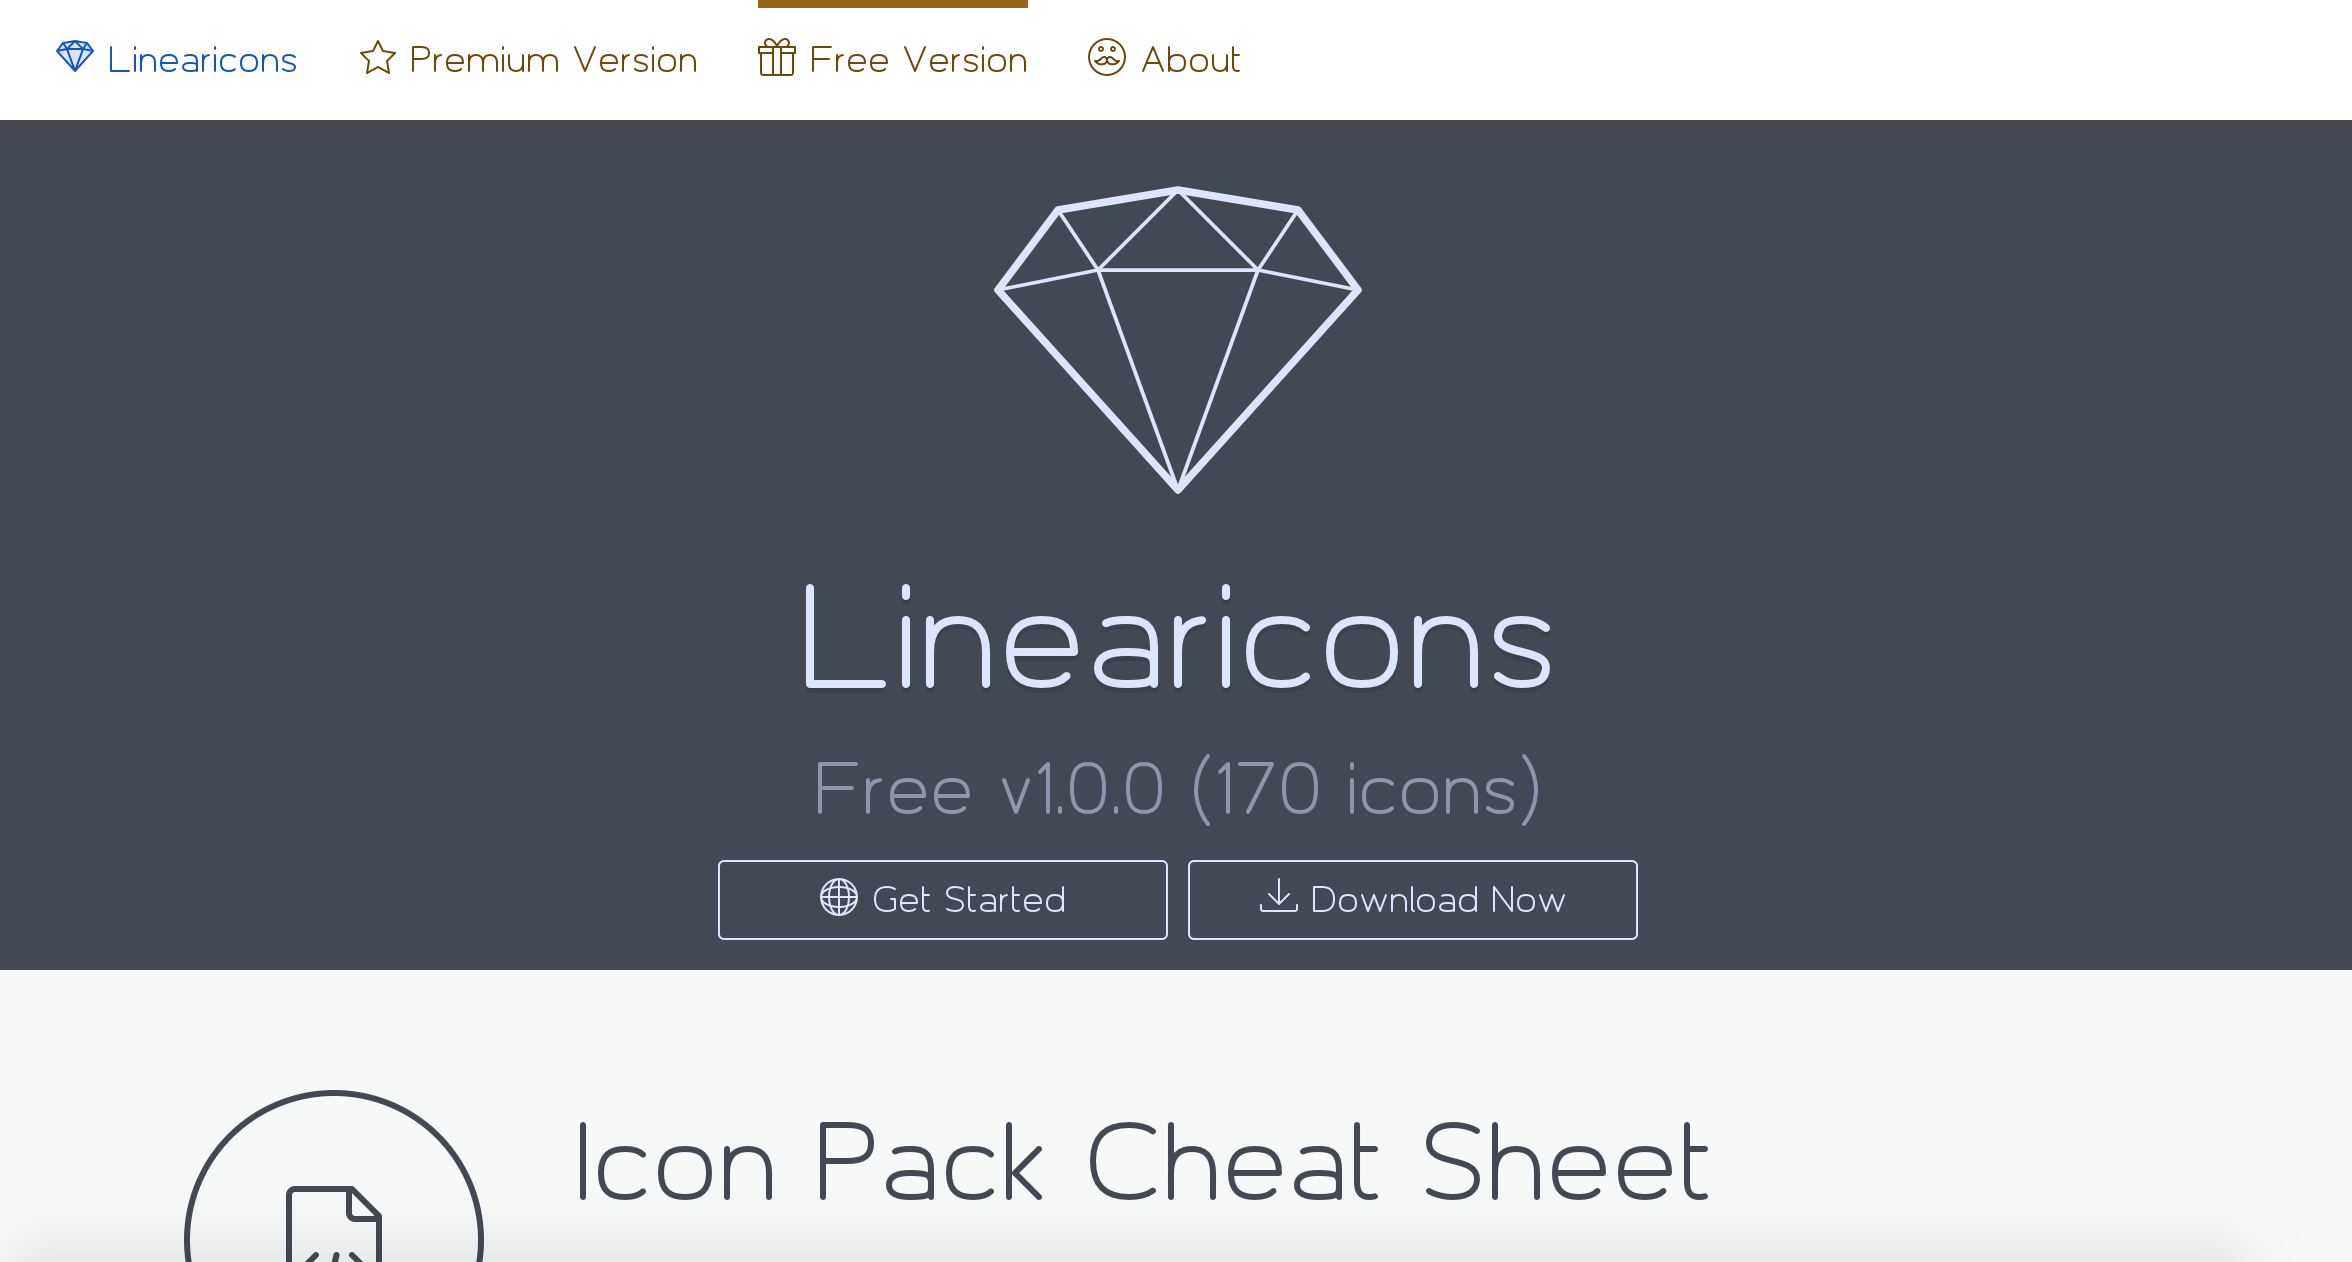 Linearicons presentation icons